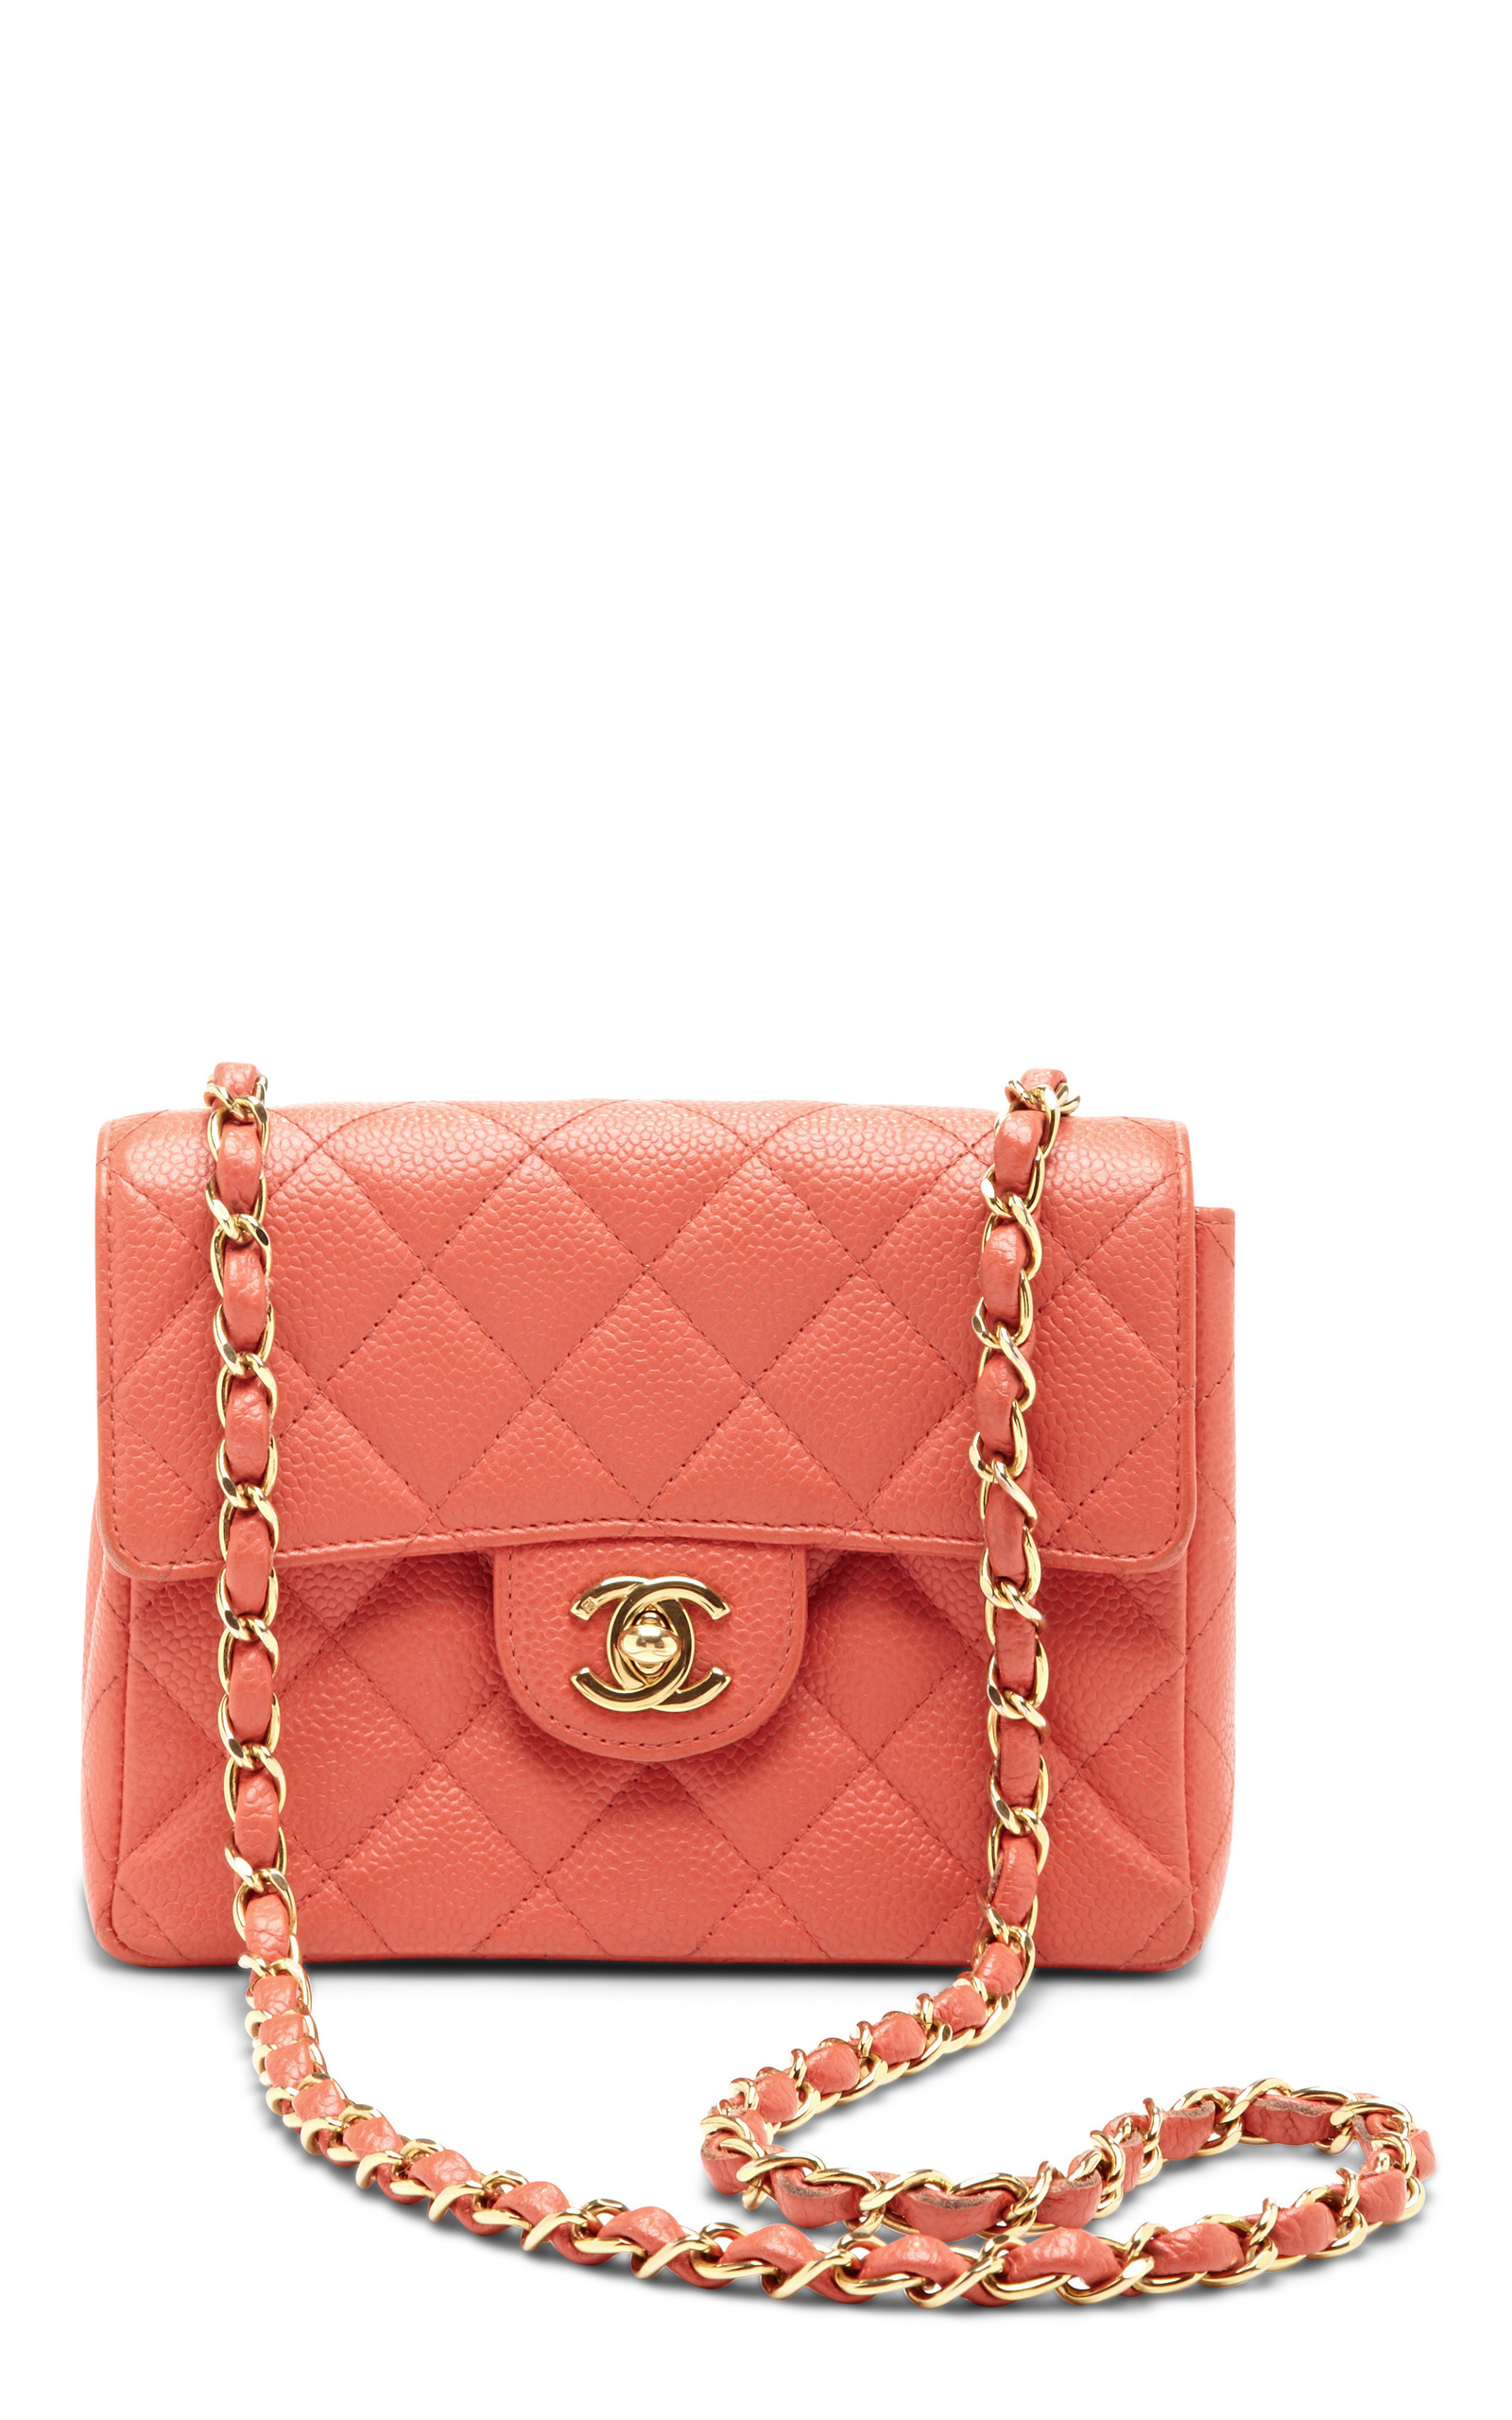 bf53ee8dbf2e What Goes Around Comes AroundVintage Chanel Coral Caviar Leather Bag.  CLOSE. Loading